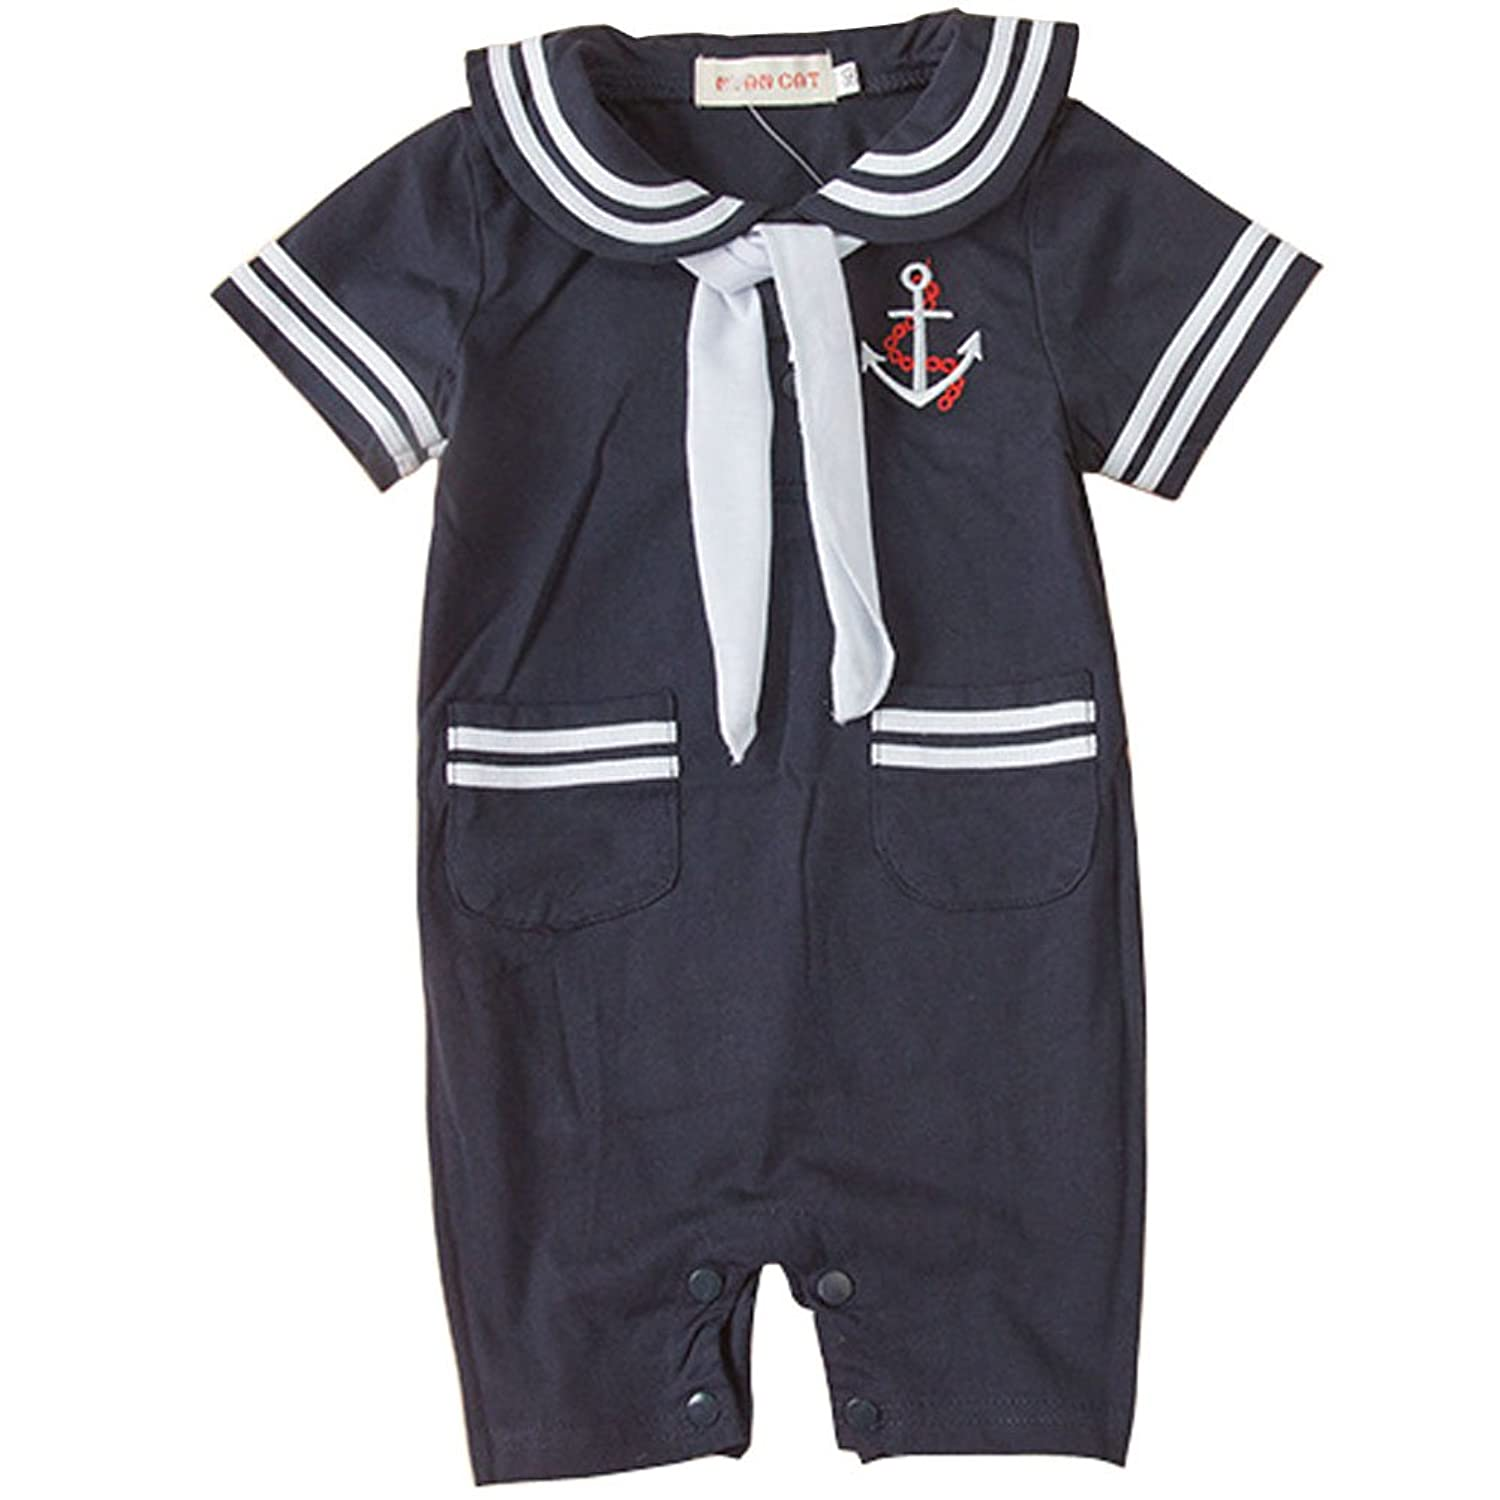 1930s Childrens Fashion: Girls, Boys, Toddler, Baby Costumes Carrillos Boys Short Sleeve Sailor Suit Romper Onesie Outfit $14.99 AT vintagedancer.com